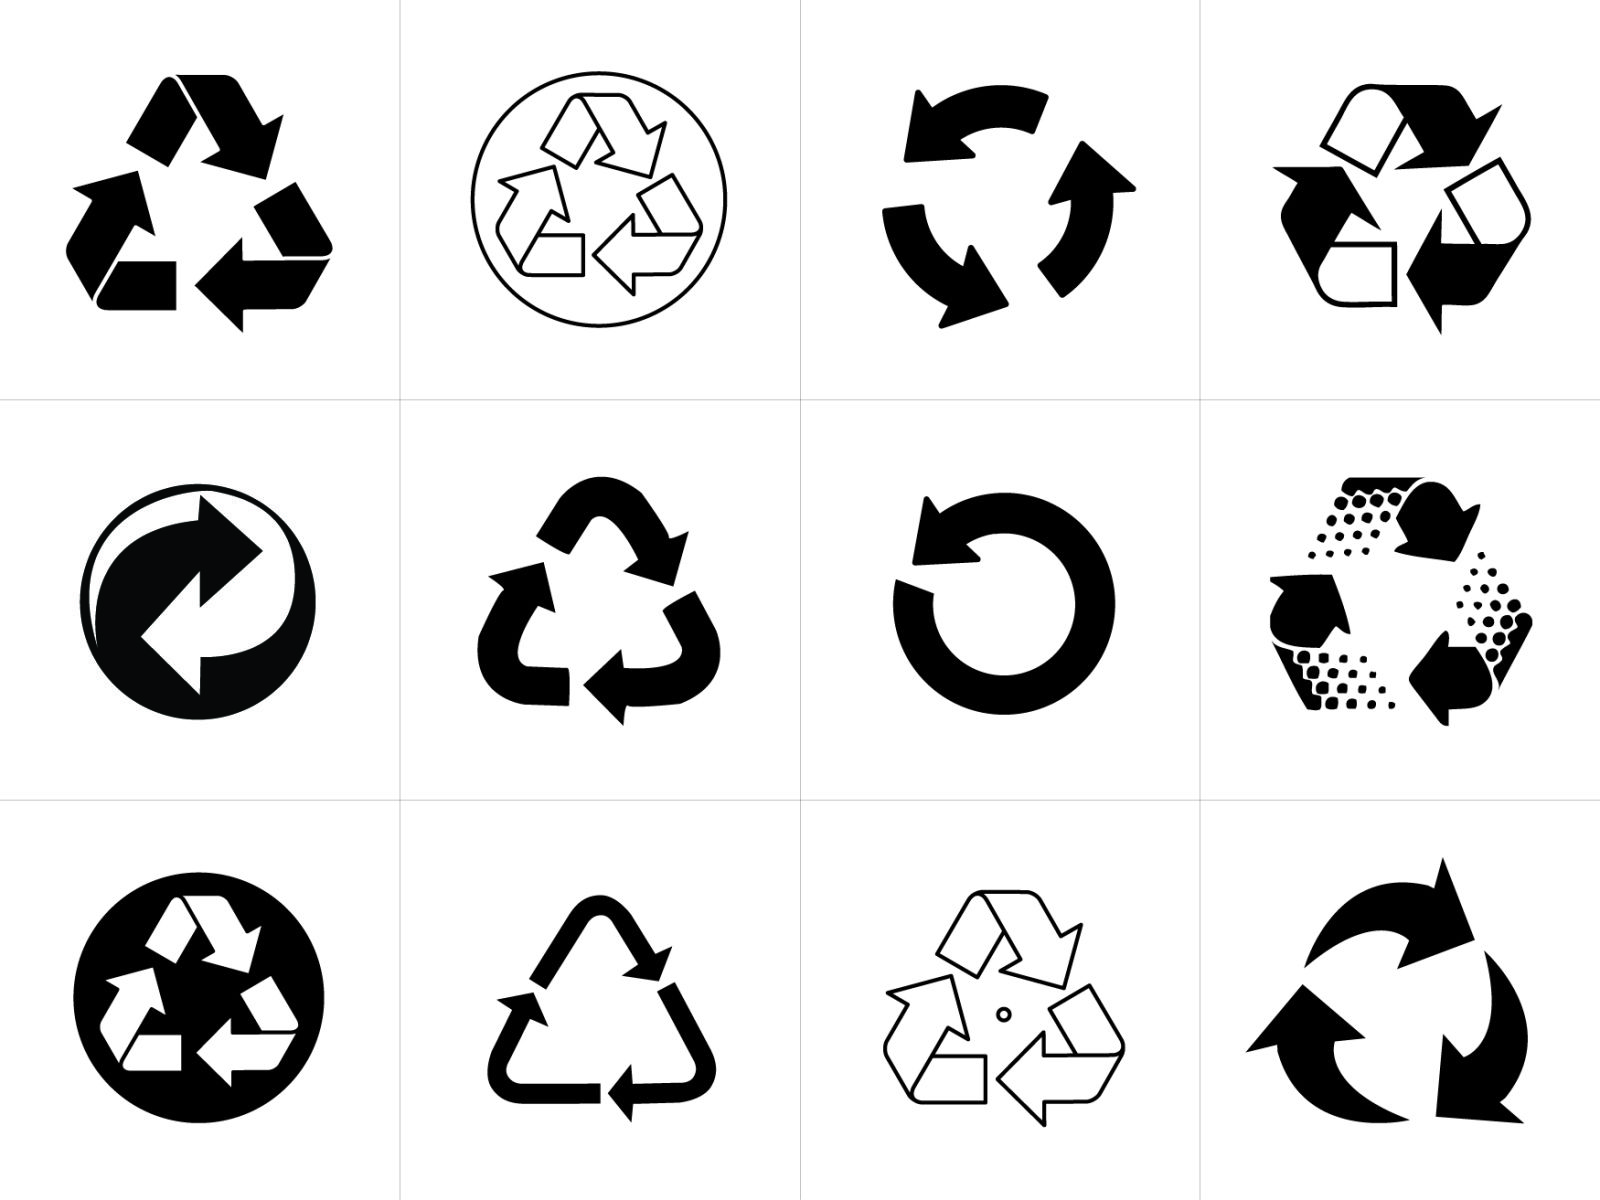 Recycling Symbol Vectors For Download Recycle Symbol Beauty